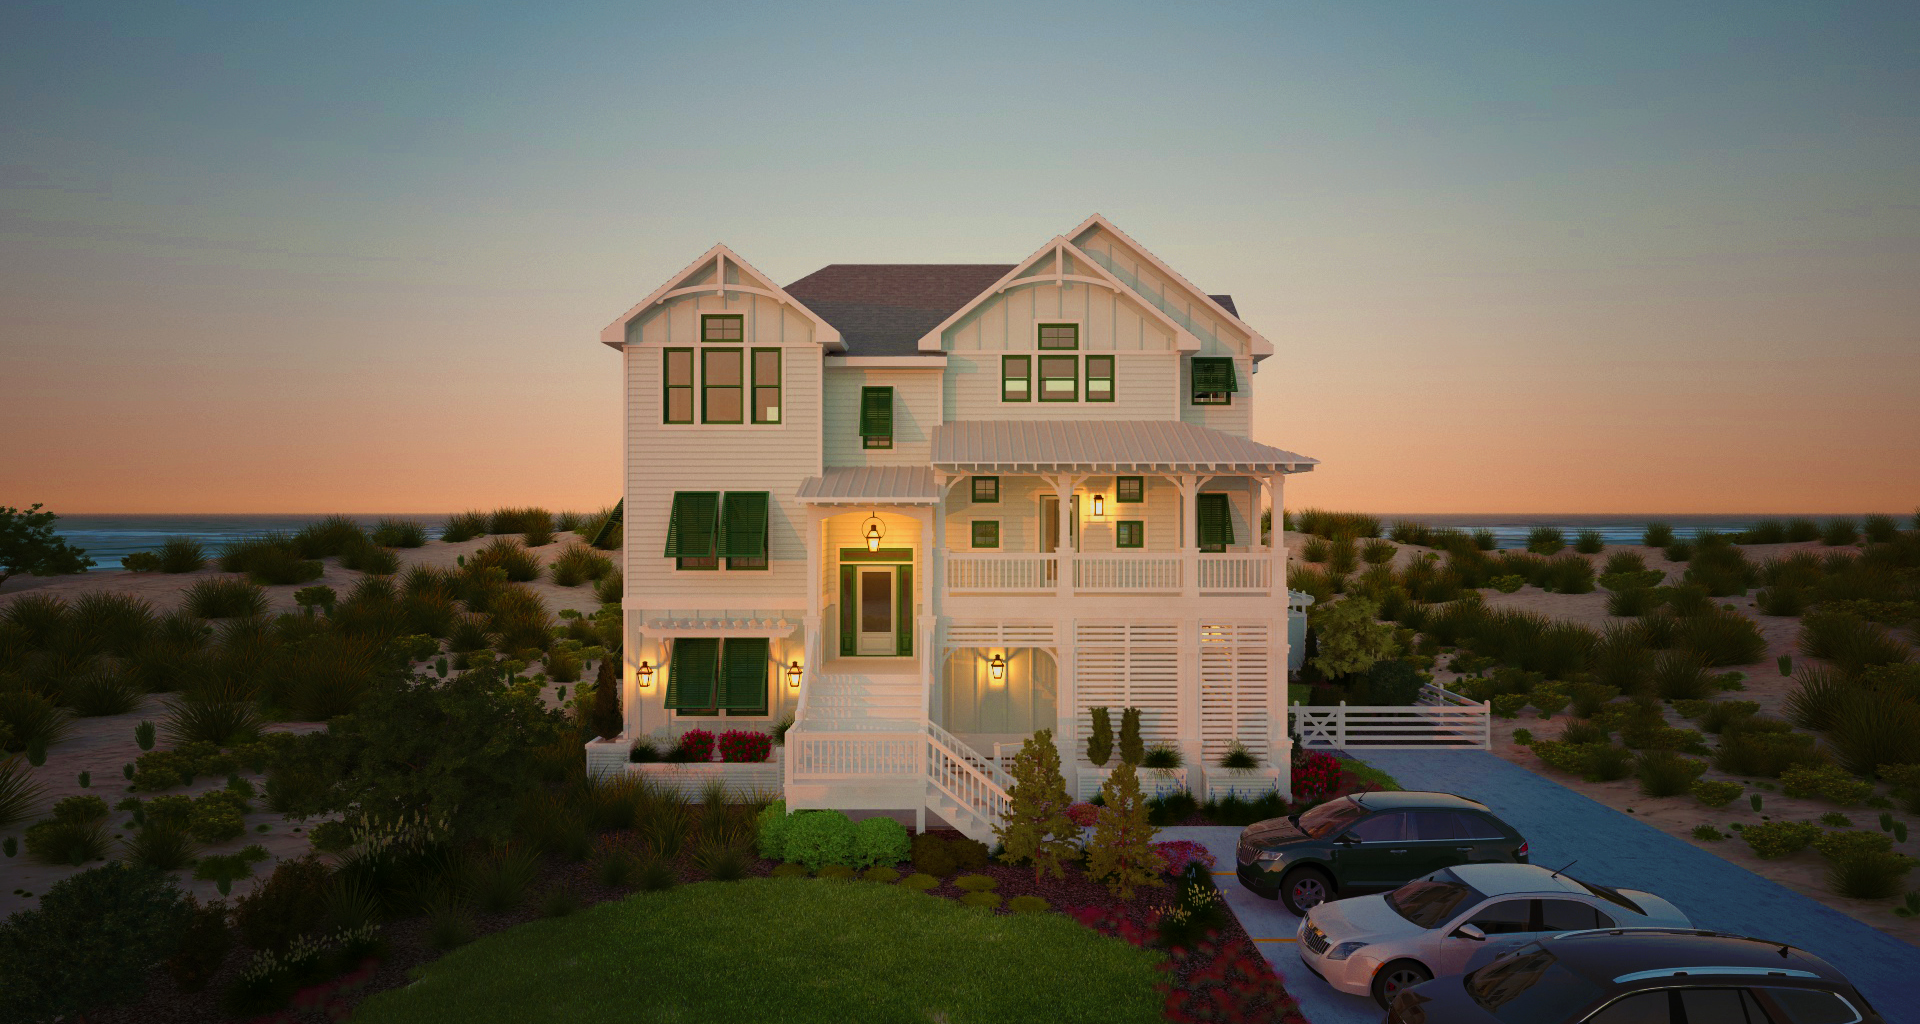 Elegant Florez Design Studios | House Plans/Coastal Home Design/OBX House ...